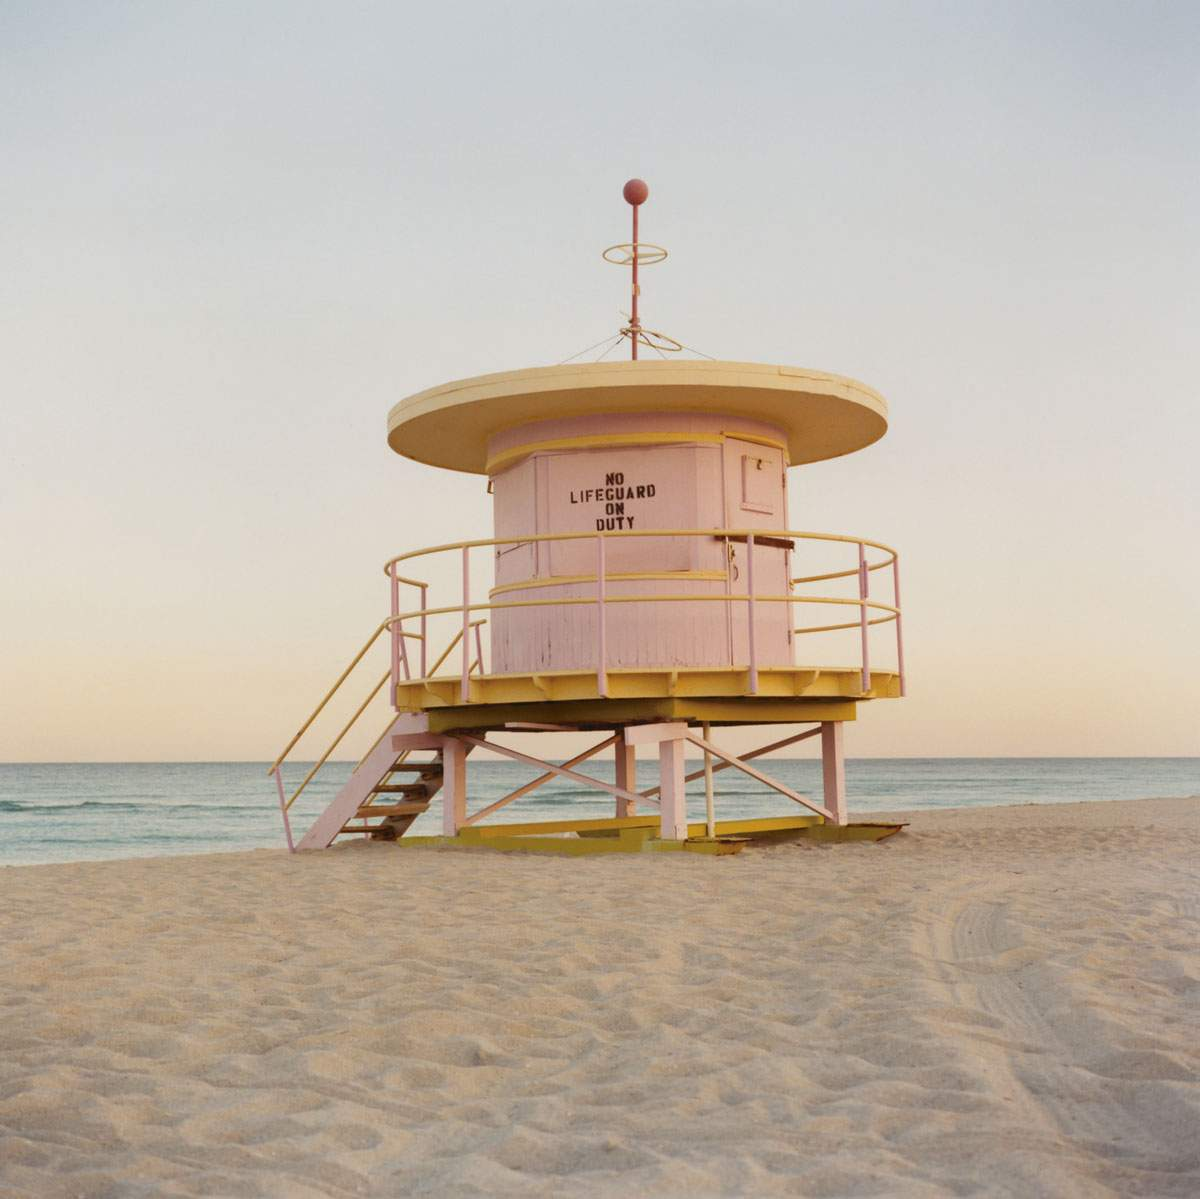 Lifeguard station on the beach in Florida